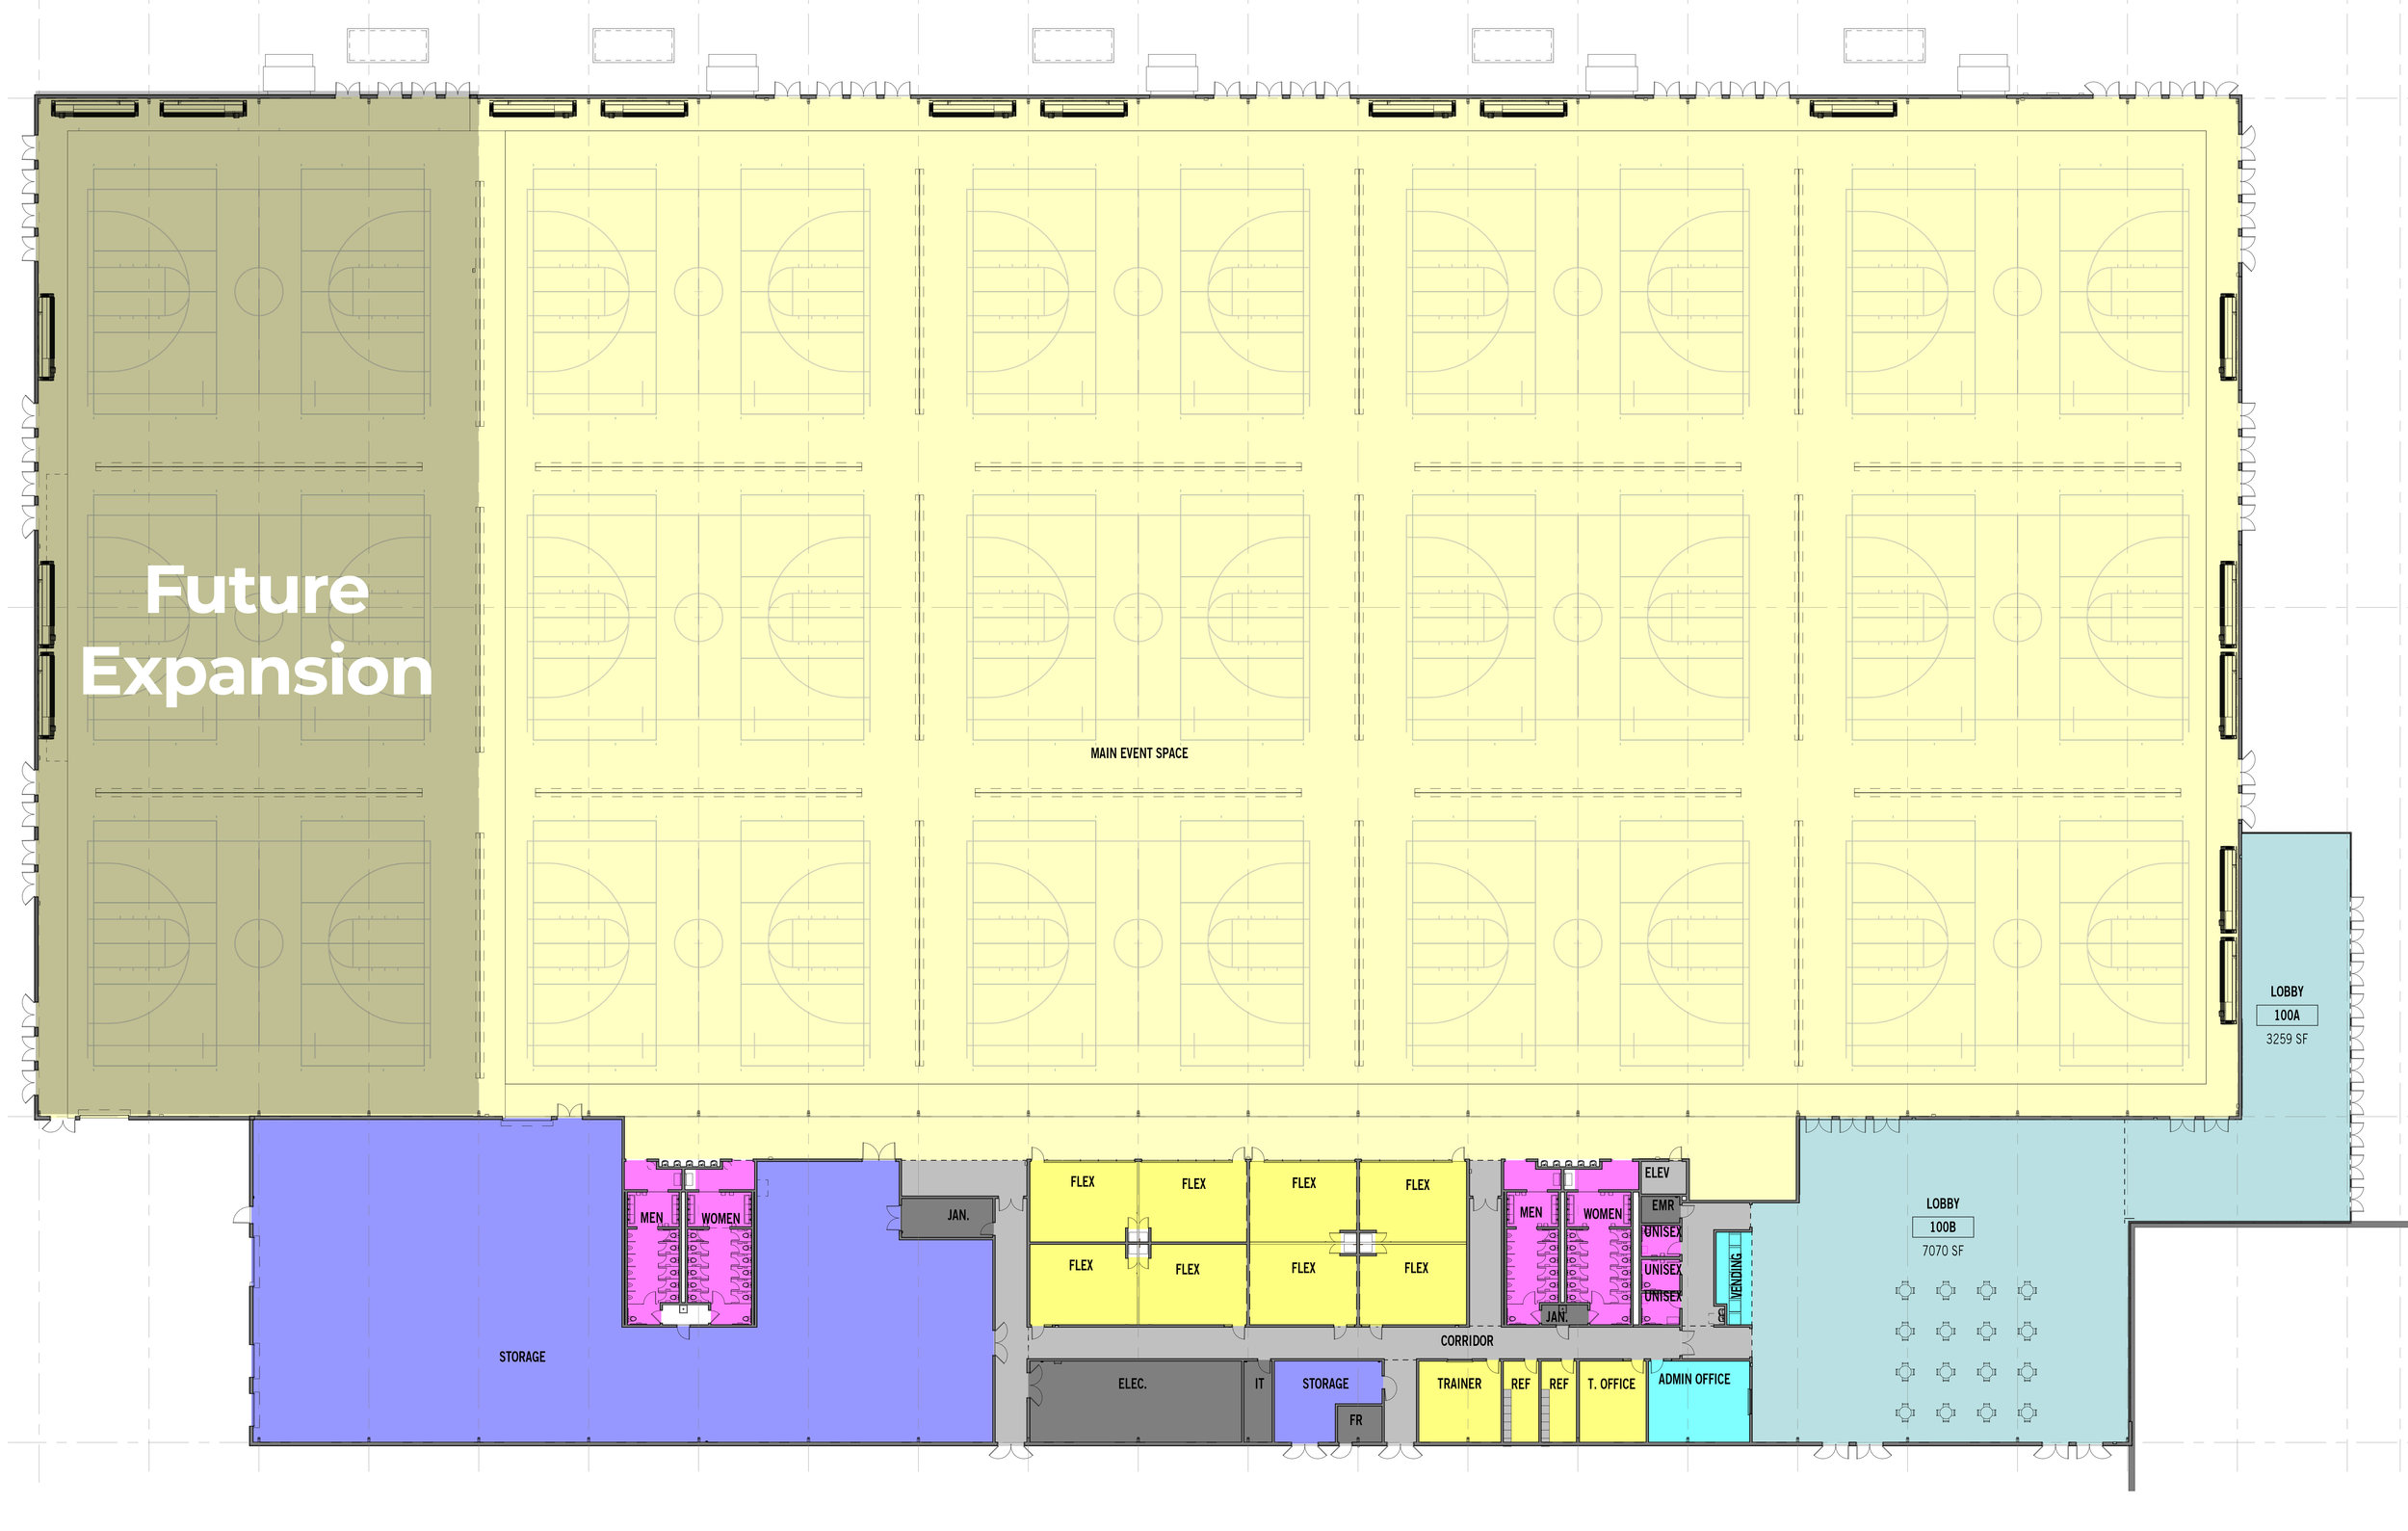 Placer Valley Event Center Floor Plan with Possible Expansion